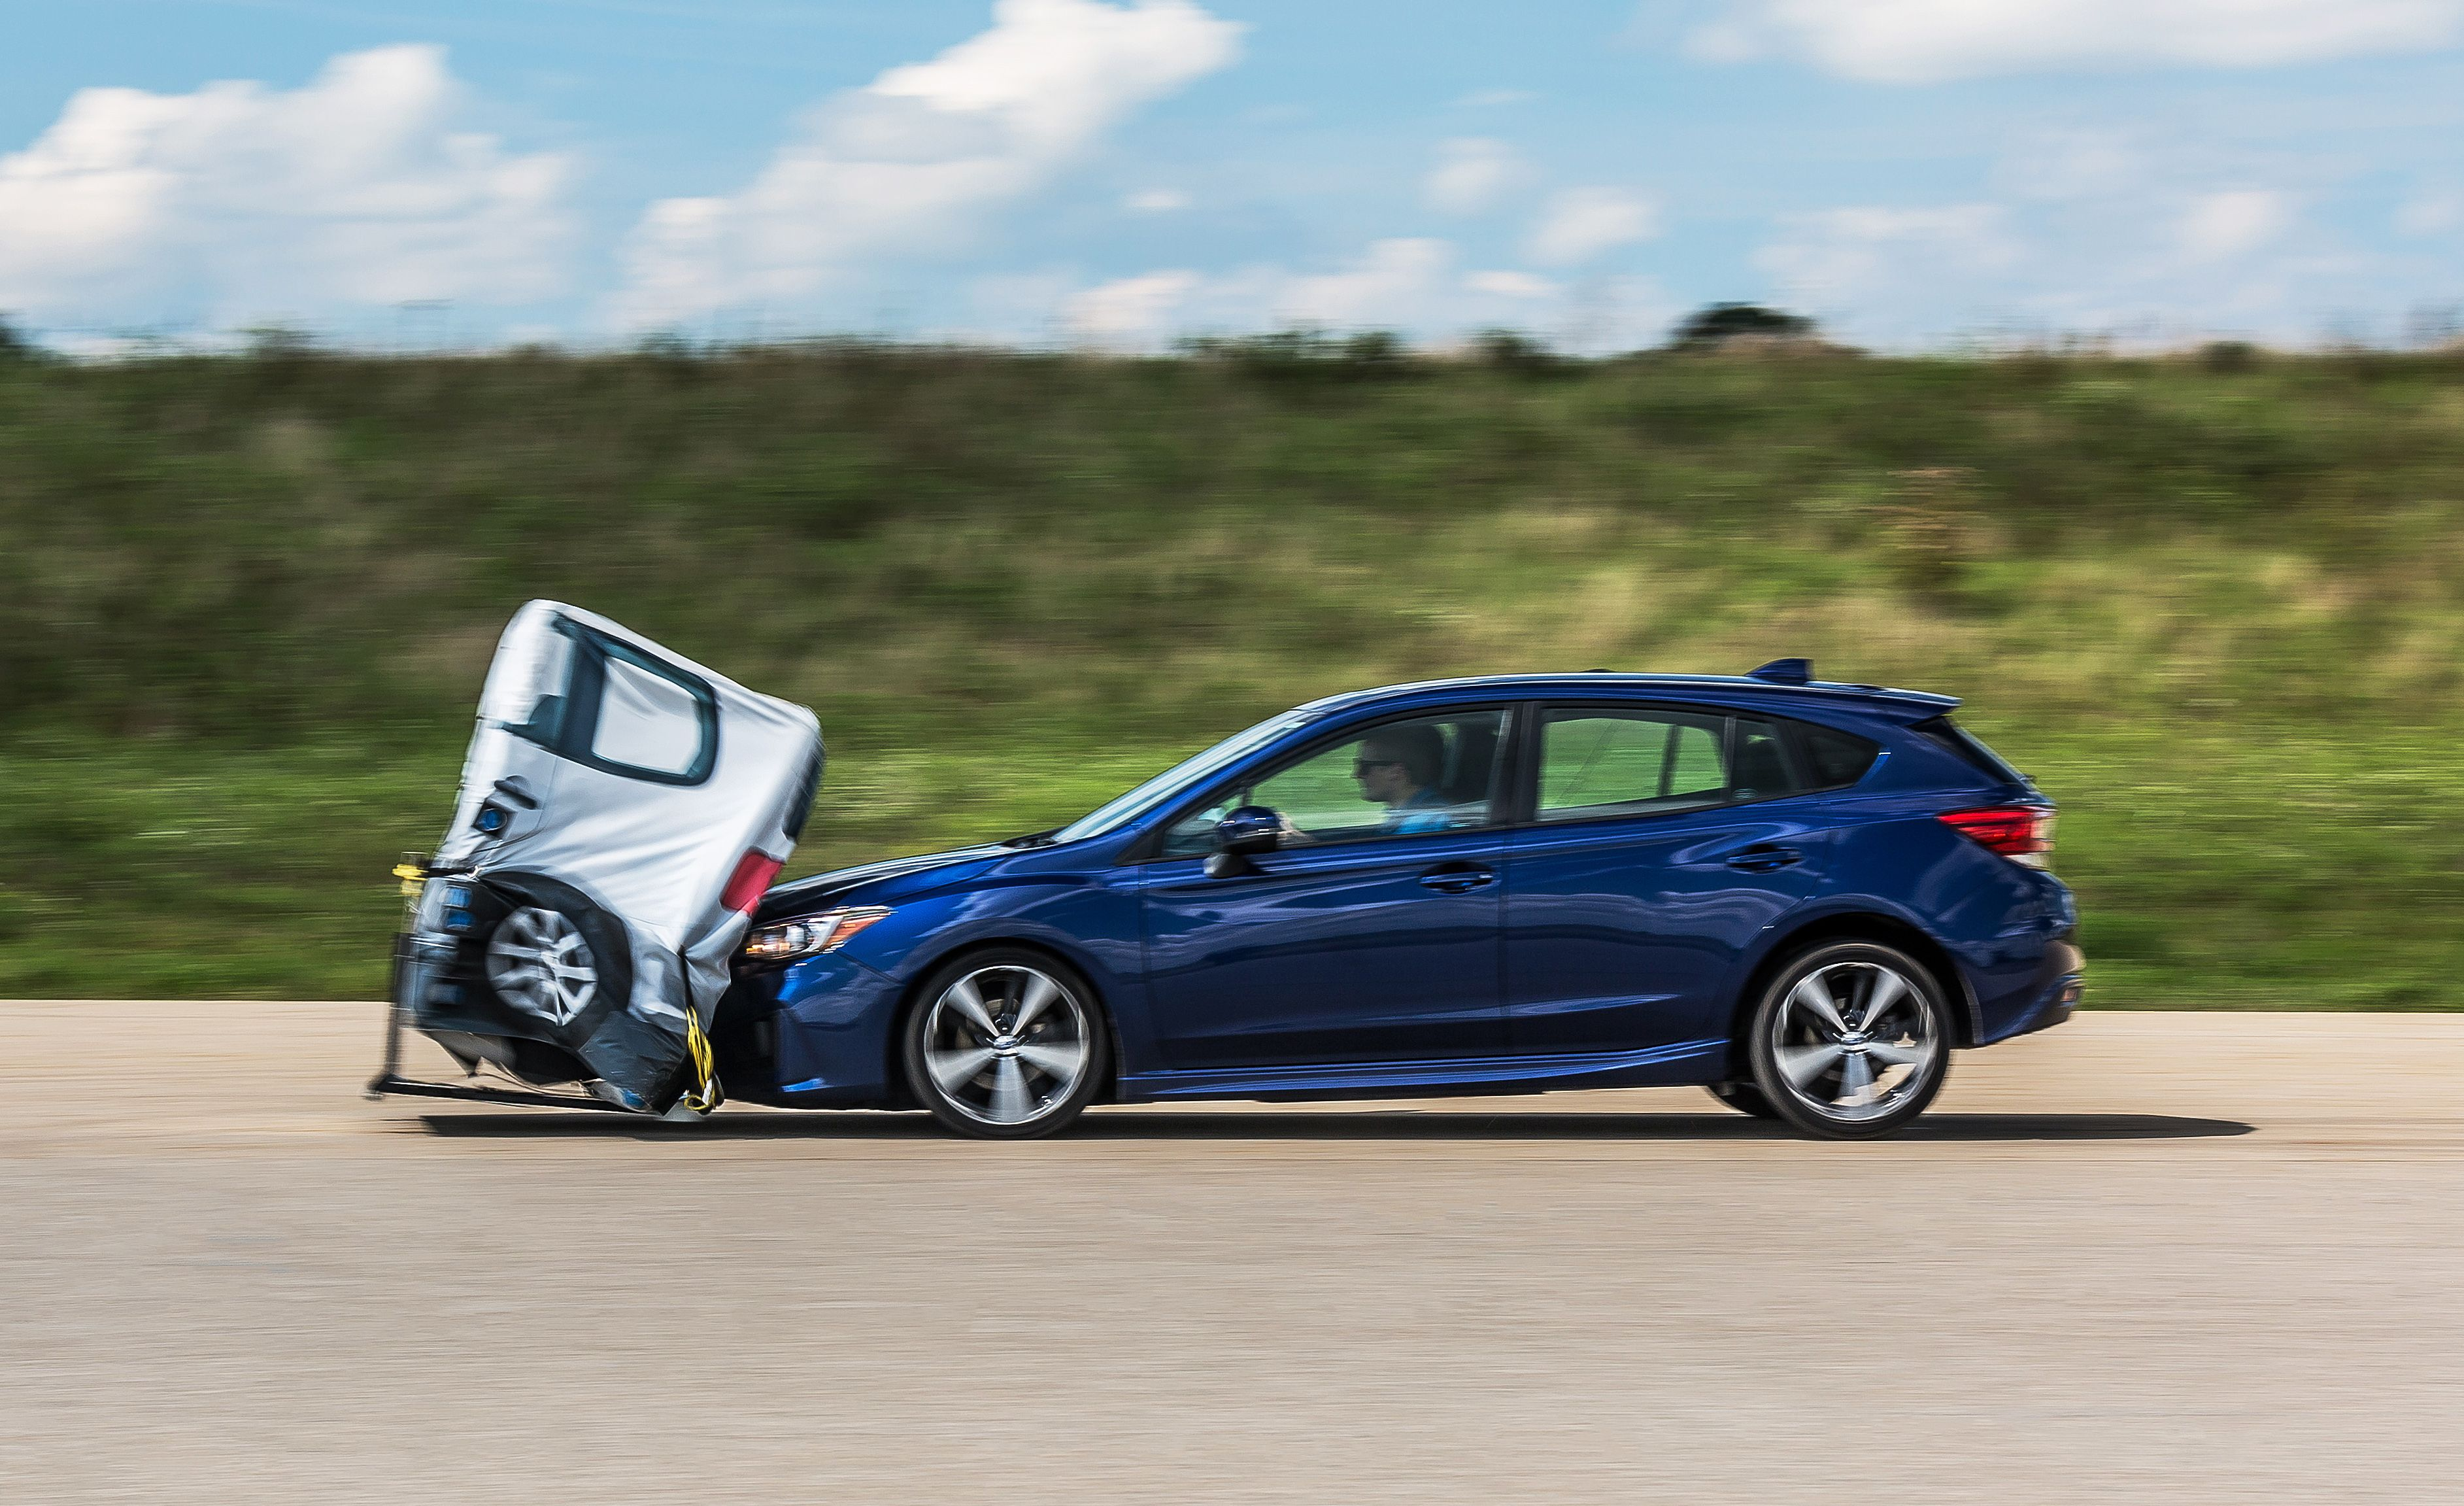 Automated-Emergency-Braking Systems Don't Always Work - Test